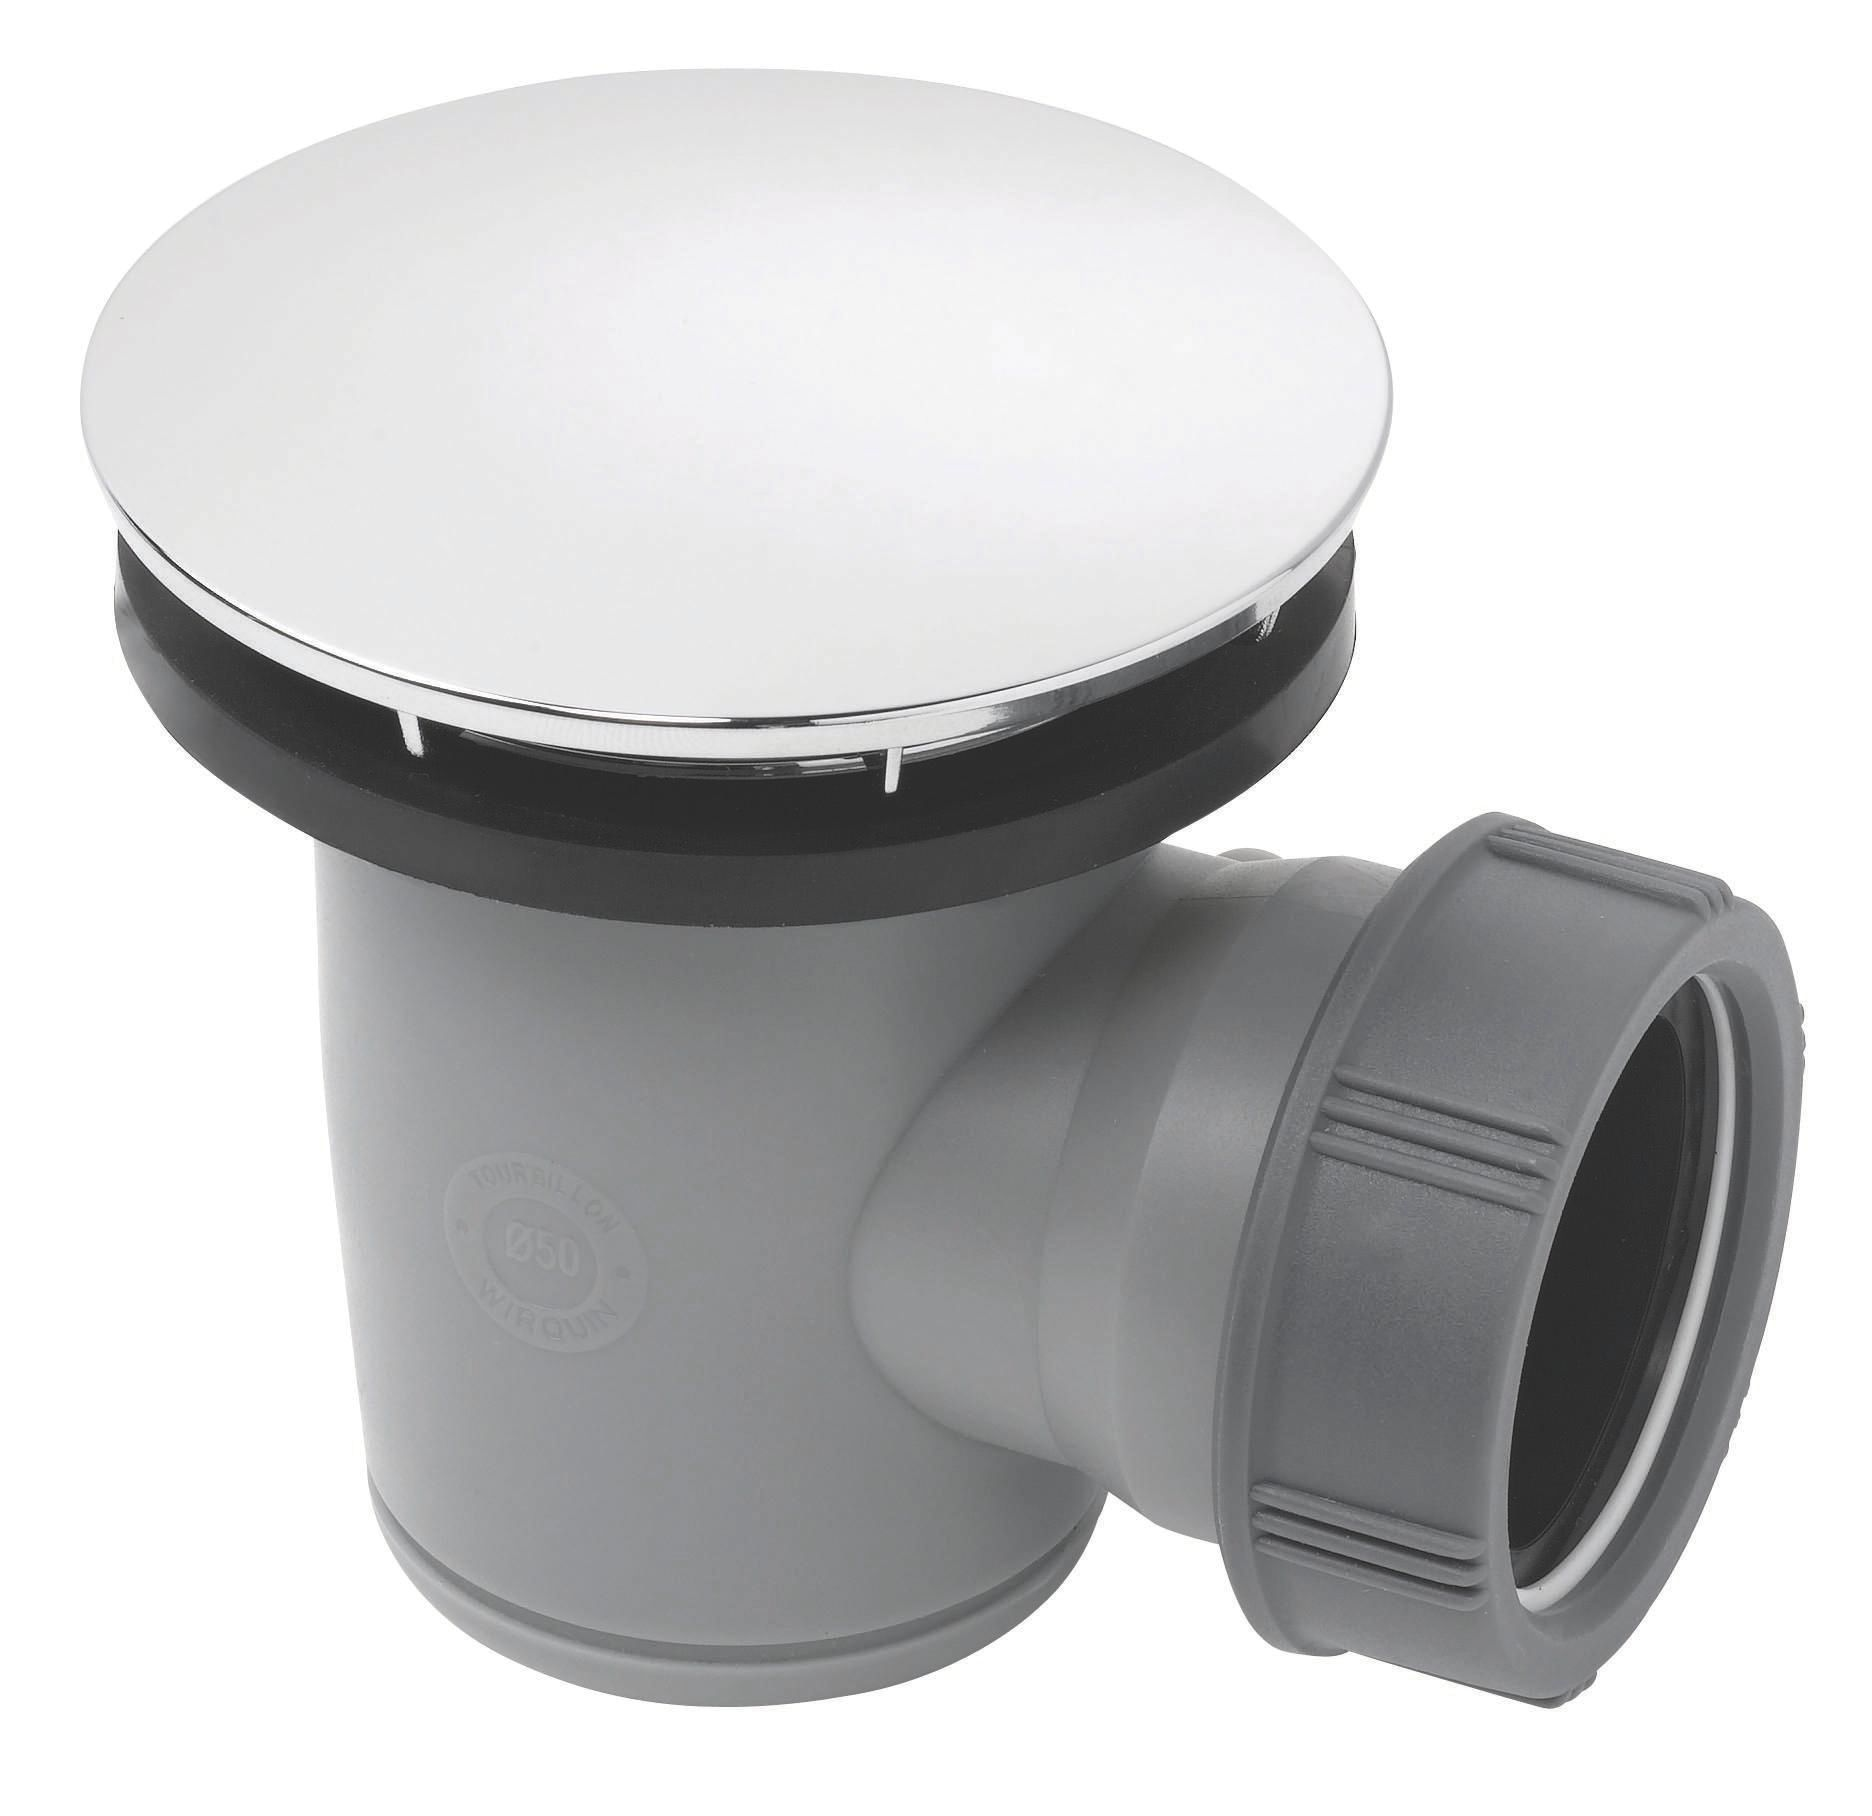 Wirquin Shower Waste Dia 50 Mm Departments Diy At B Amp Q